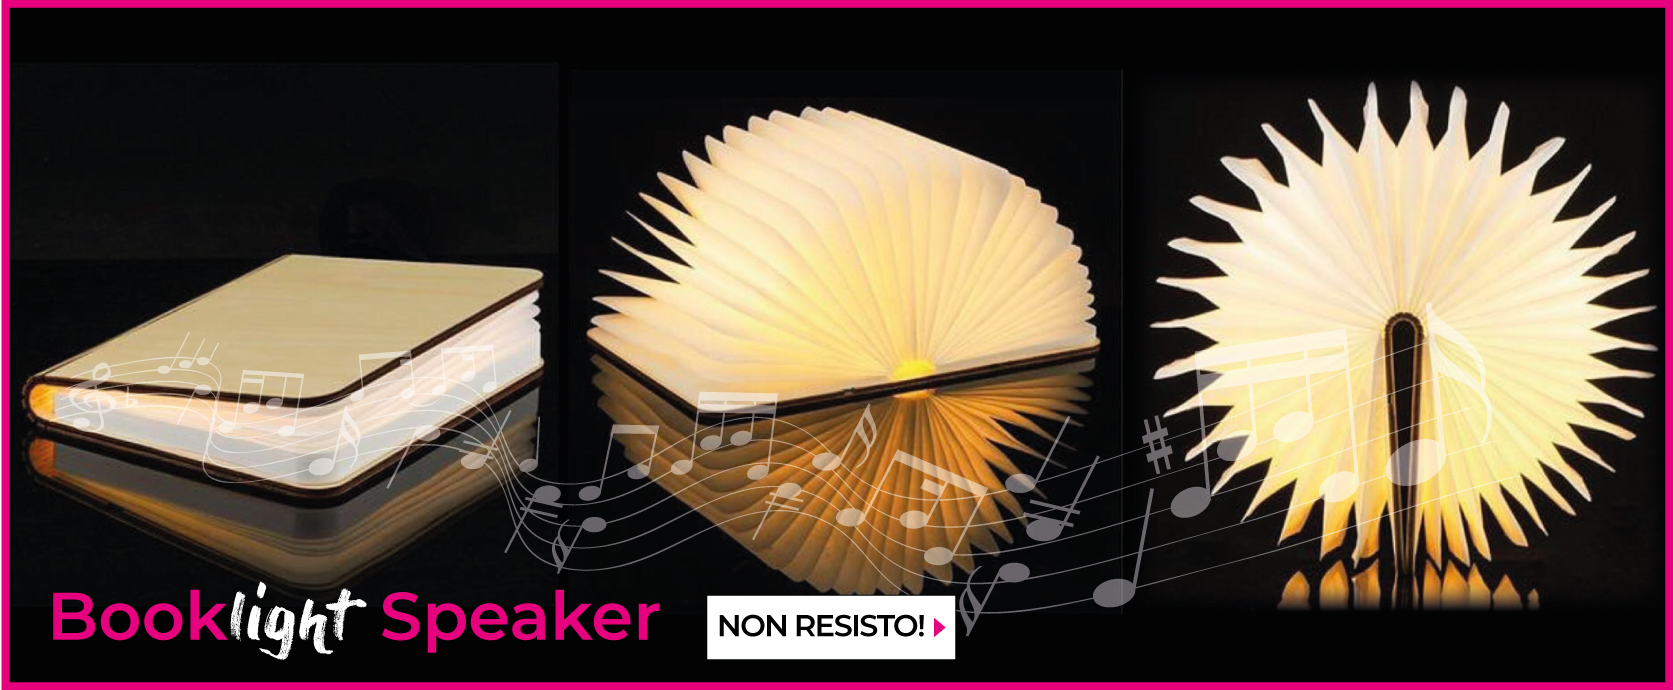 Booklight Speaker